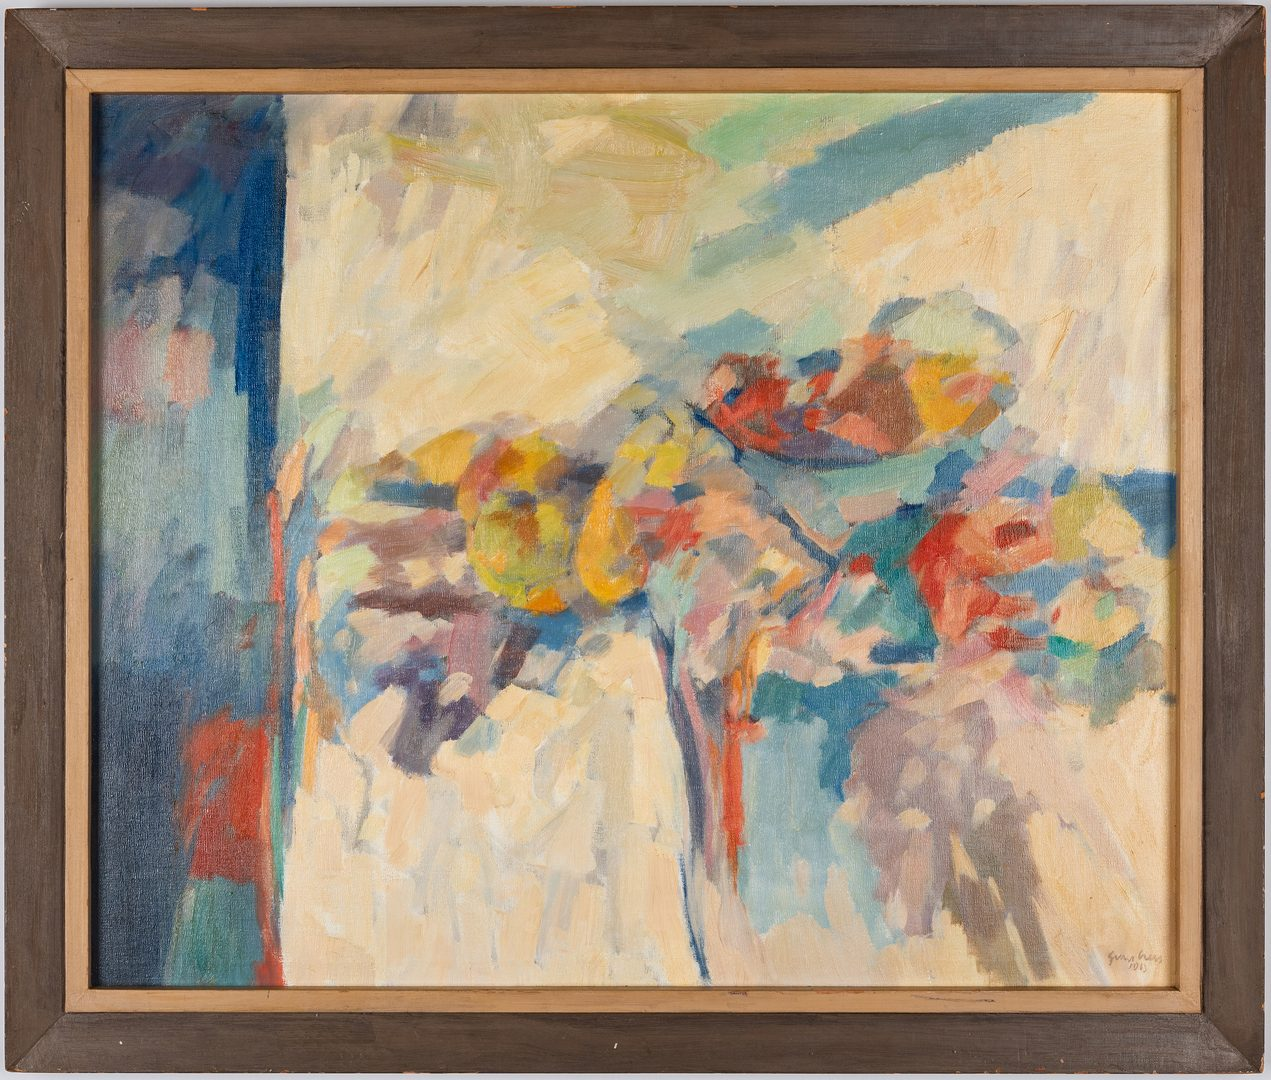 Lot 108: George Cress, AL/TN, Abstract Still Life